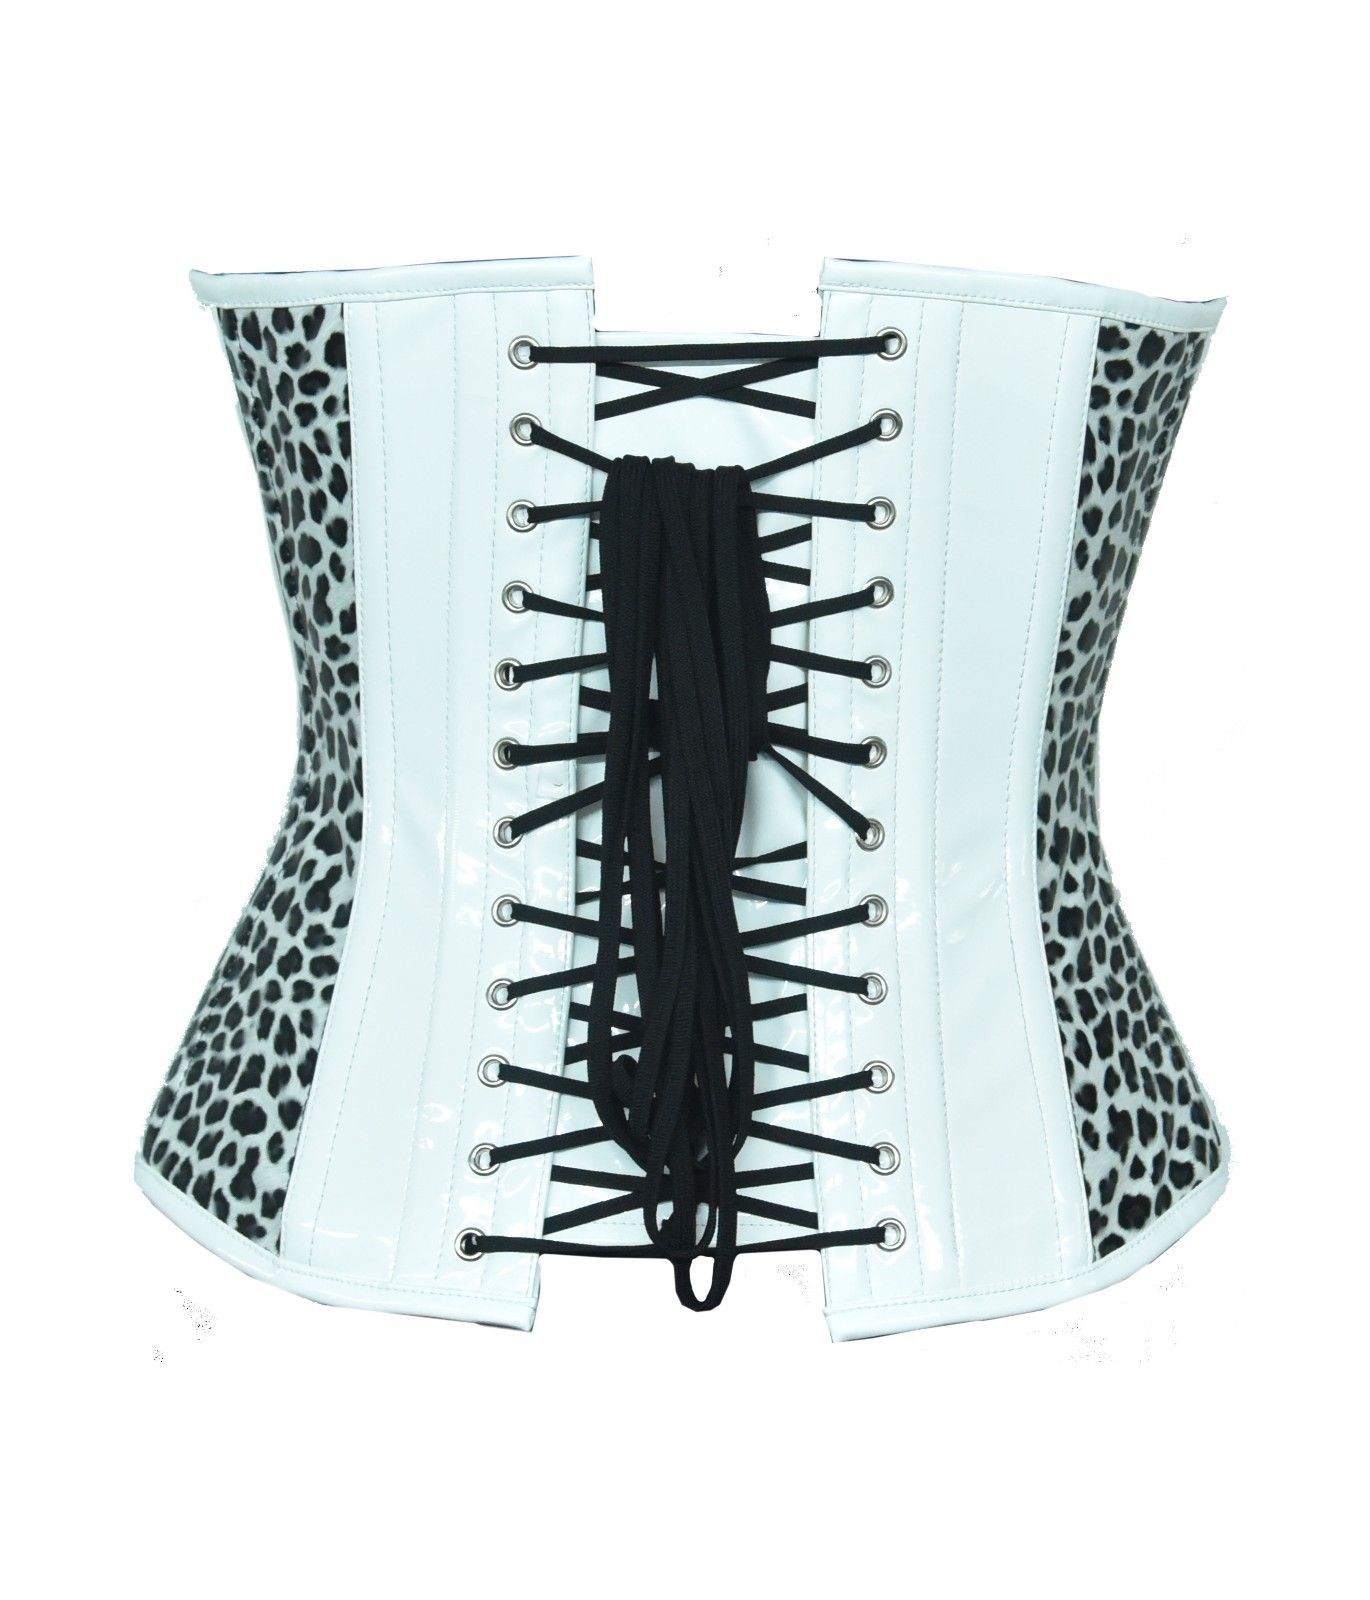 Leopard Print White PVC Leather Gothic Waist Training Basque Overbust Corset Top